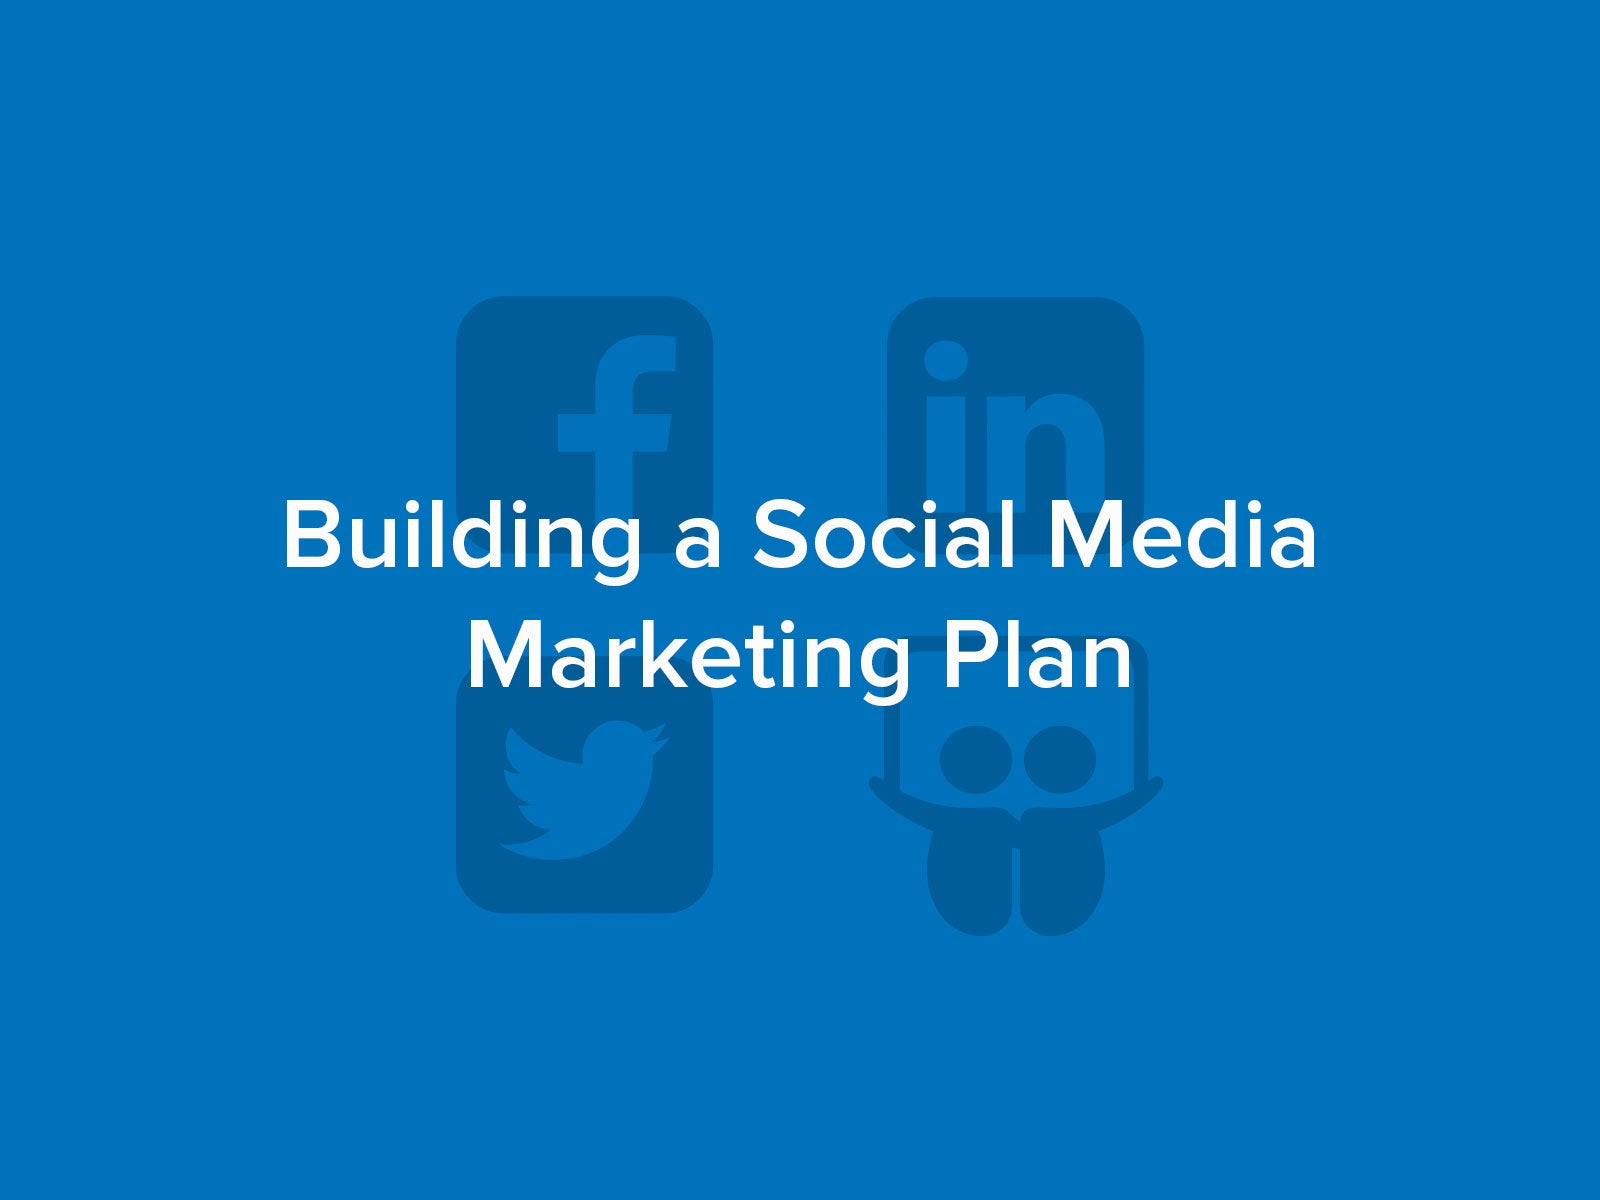 Building a Social Media Marketing Plan